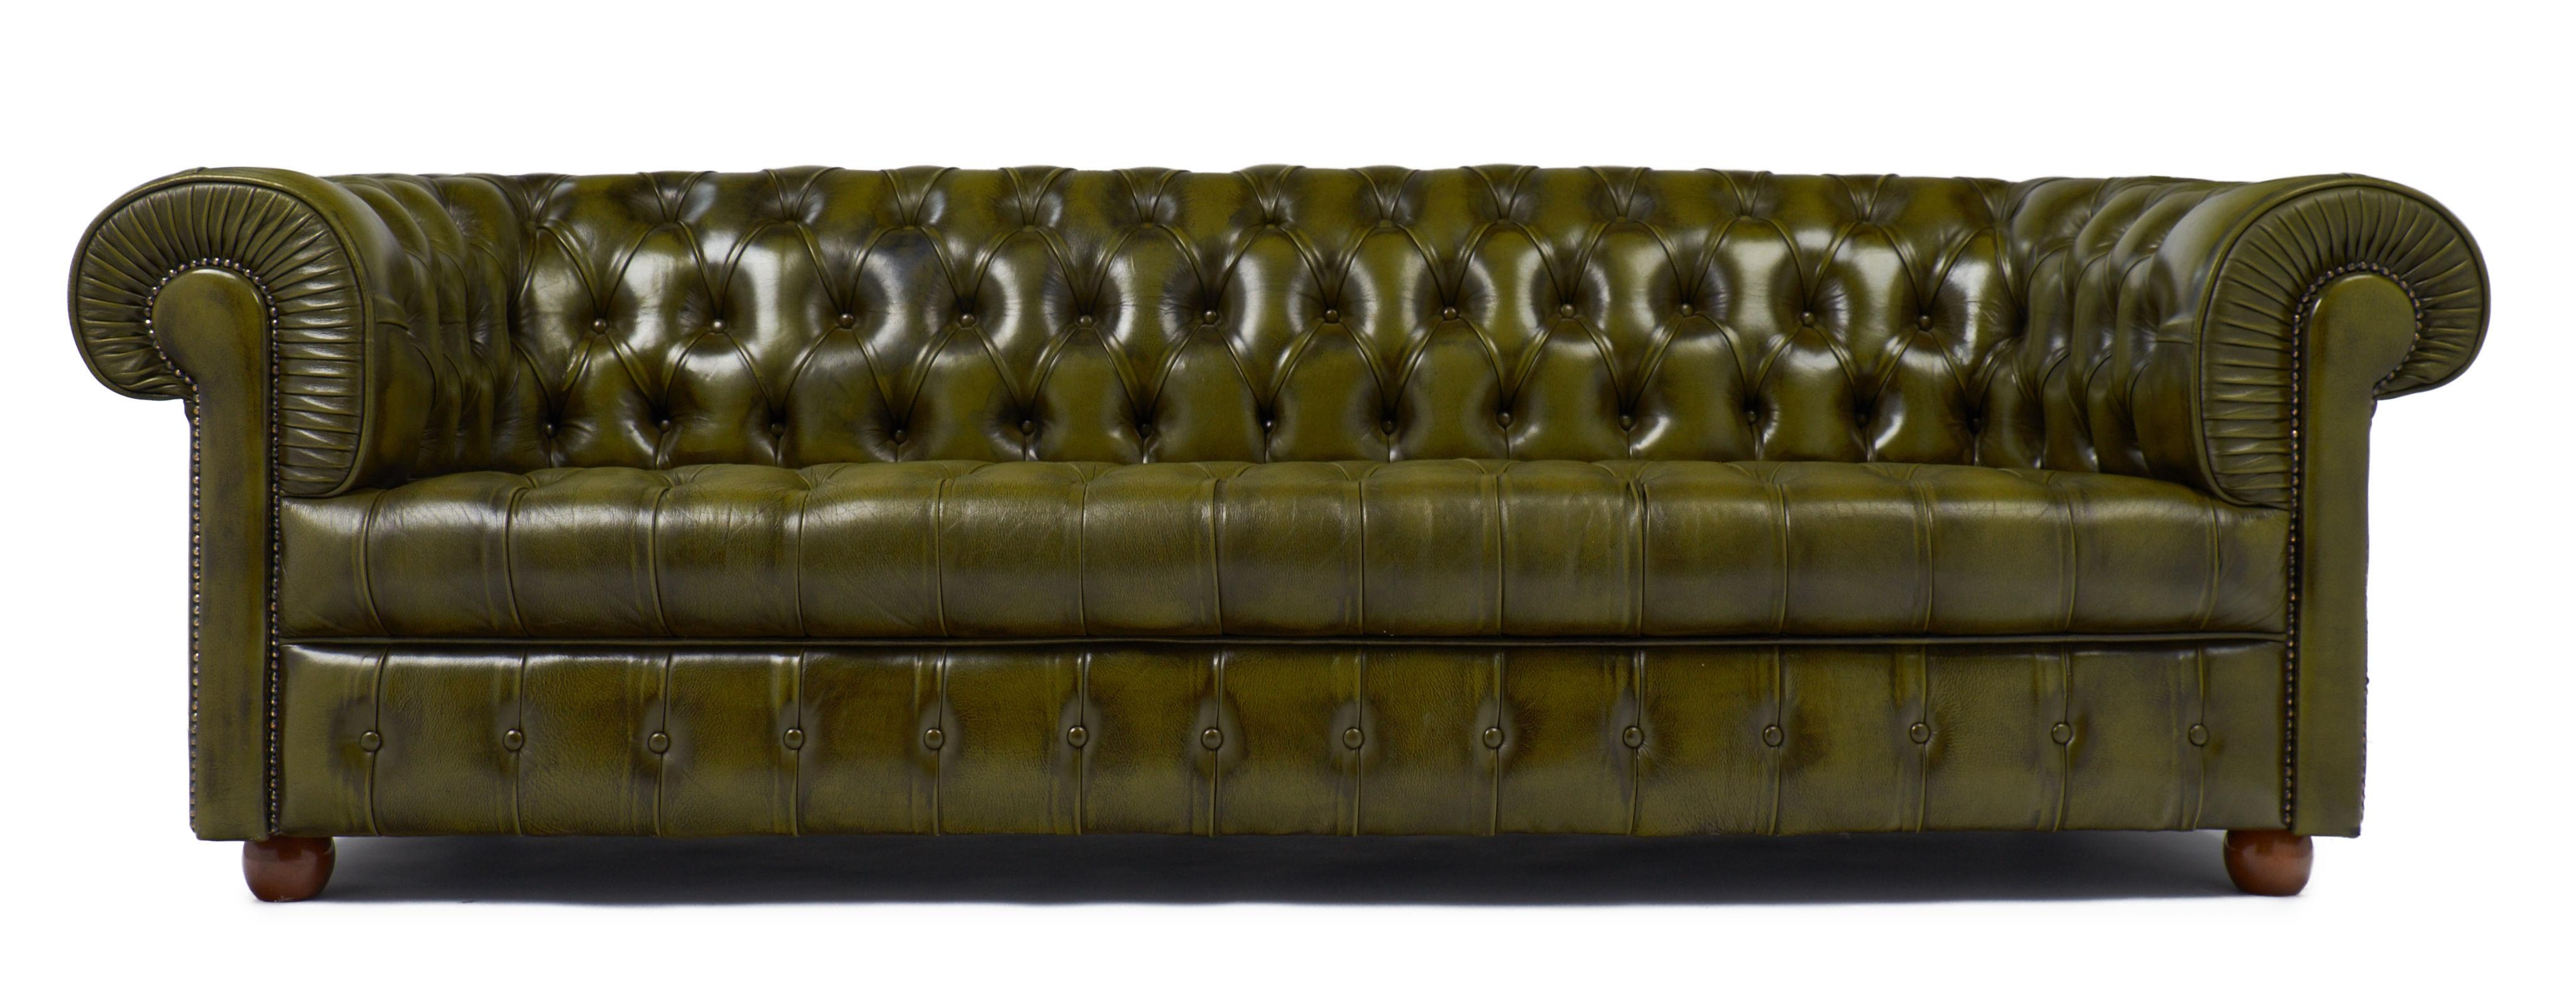 20 Collection of Vintage Chesterfield Sofas | Sofa Ideas